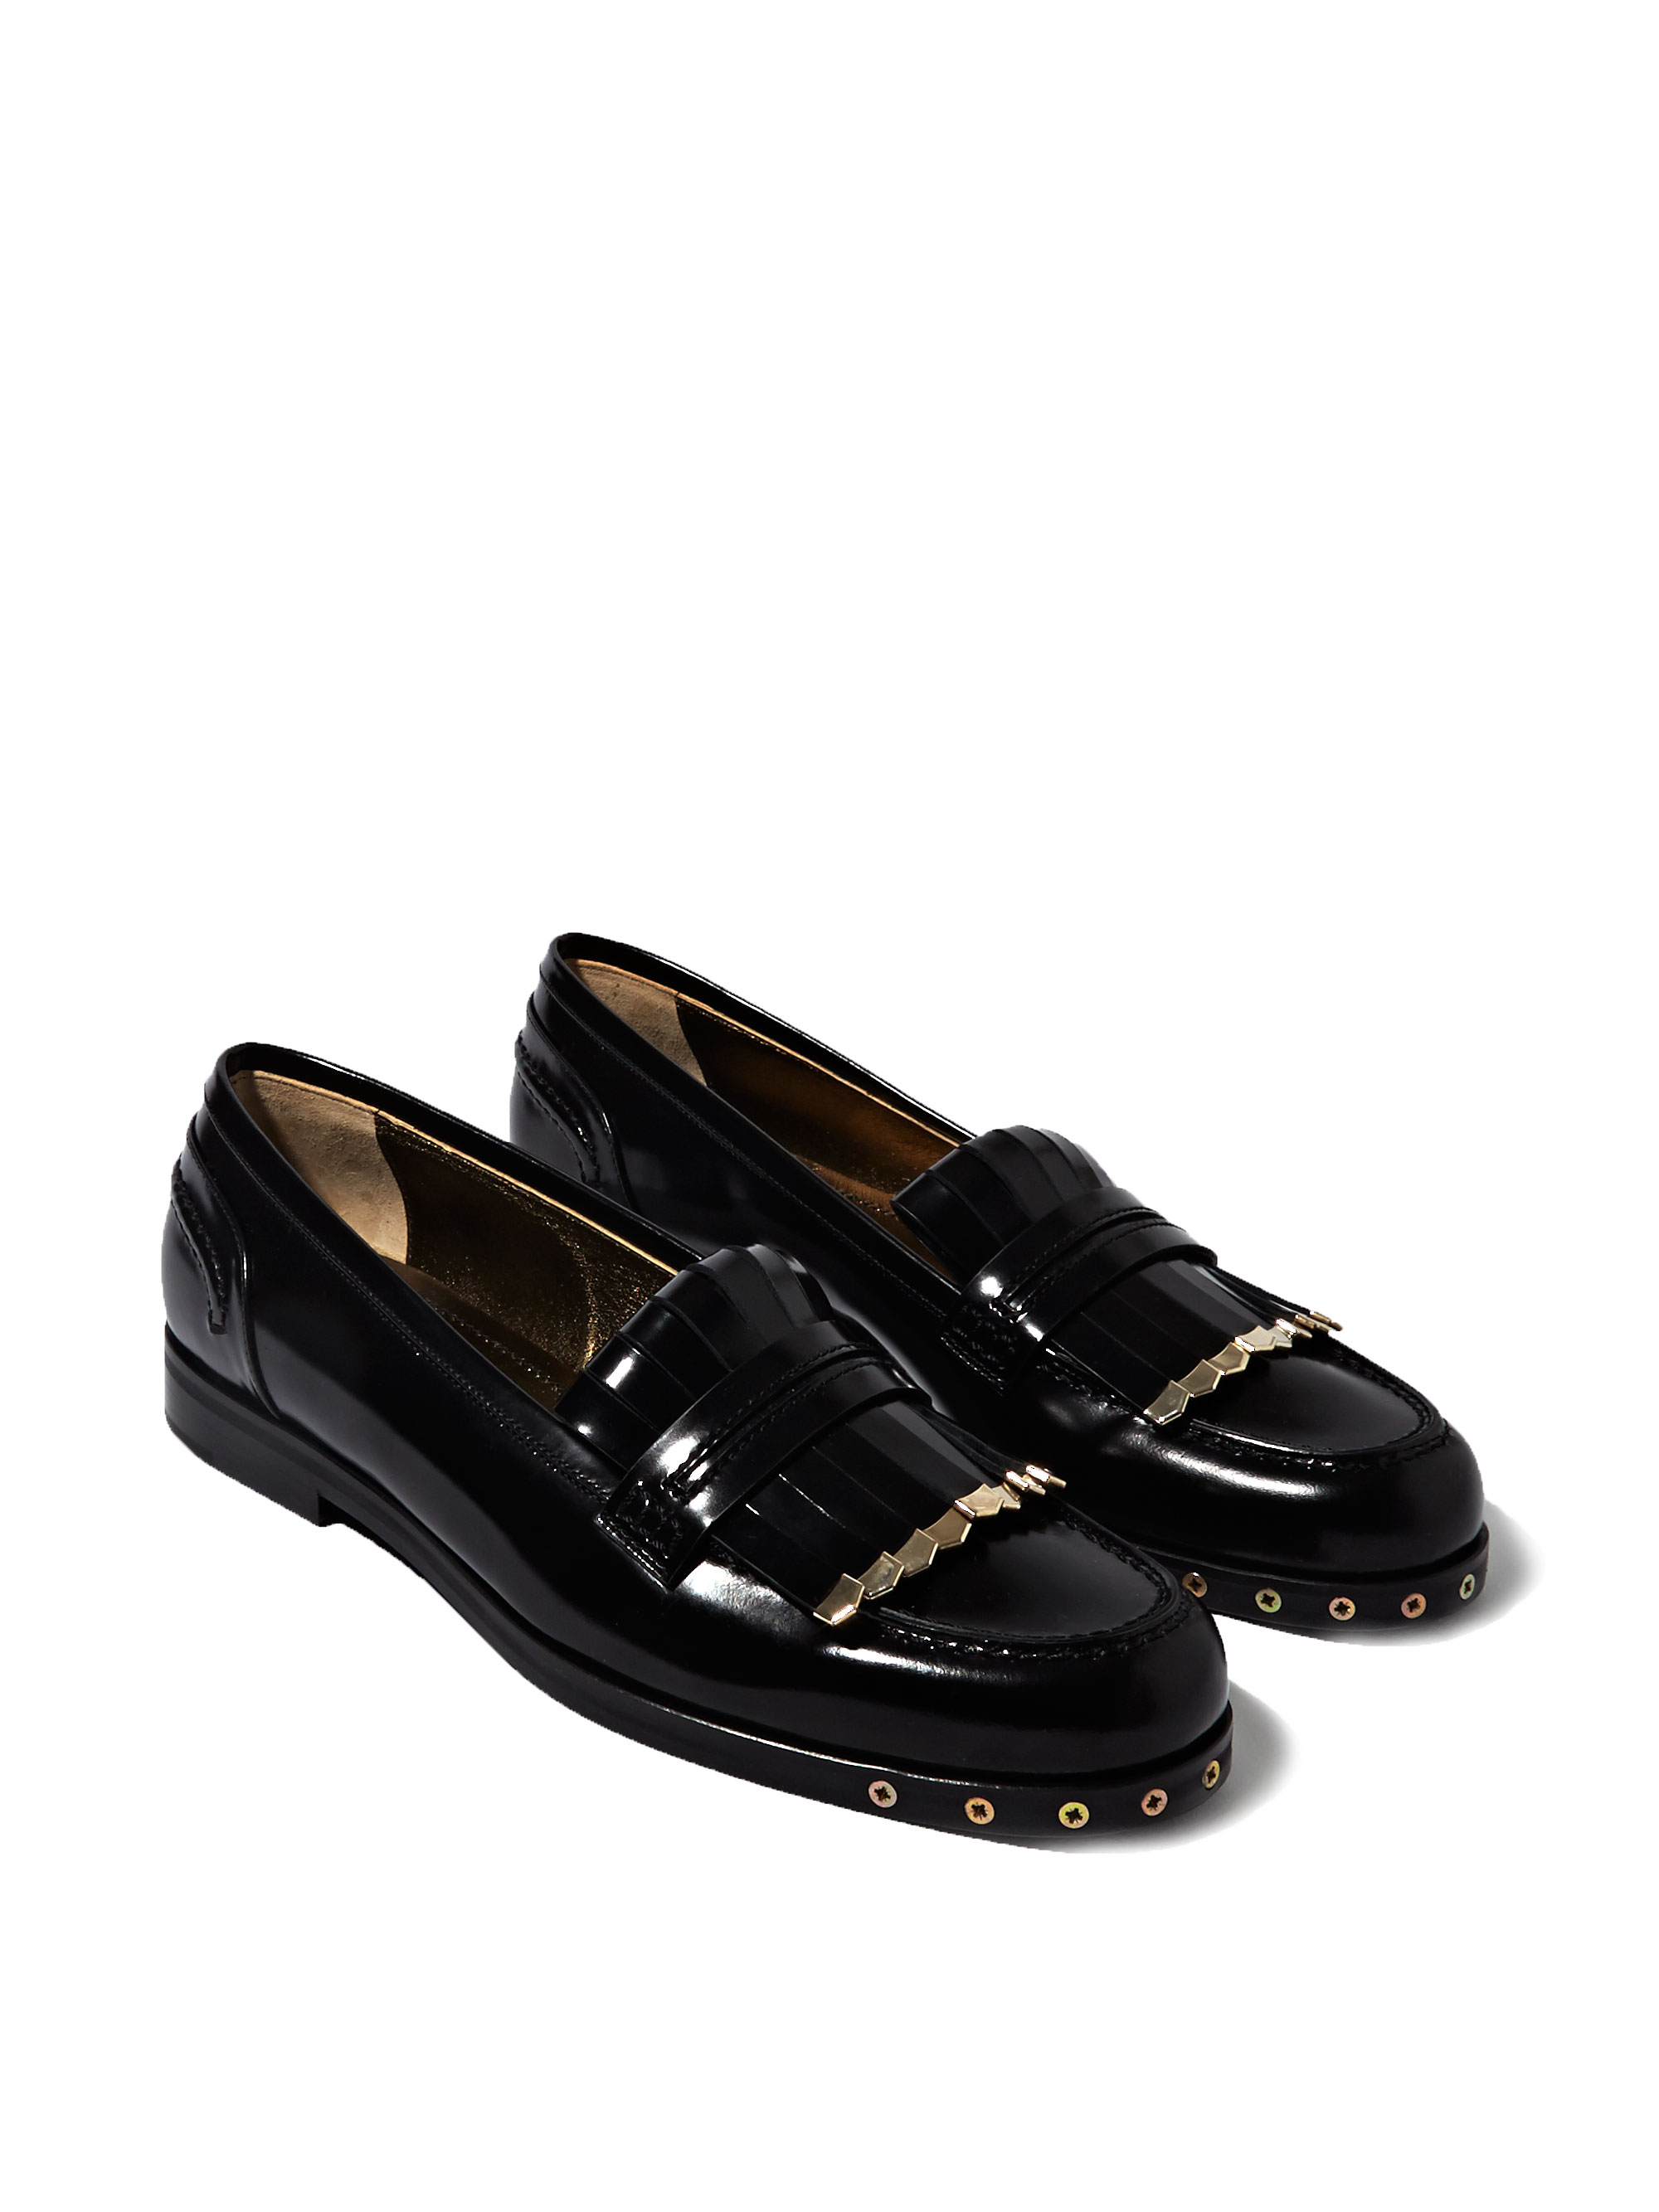 Lyst - Lanvin Womens Loafer Shoes in Black